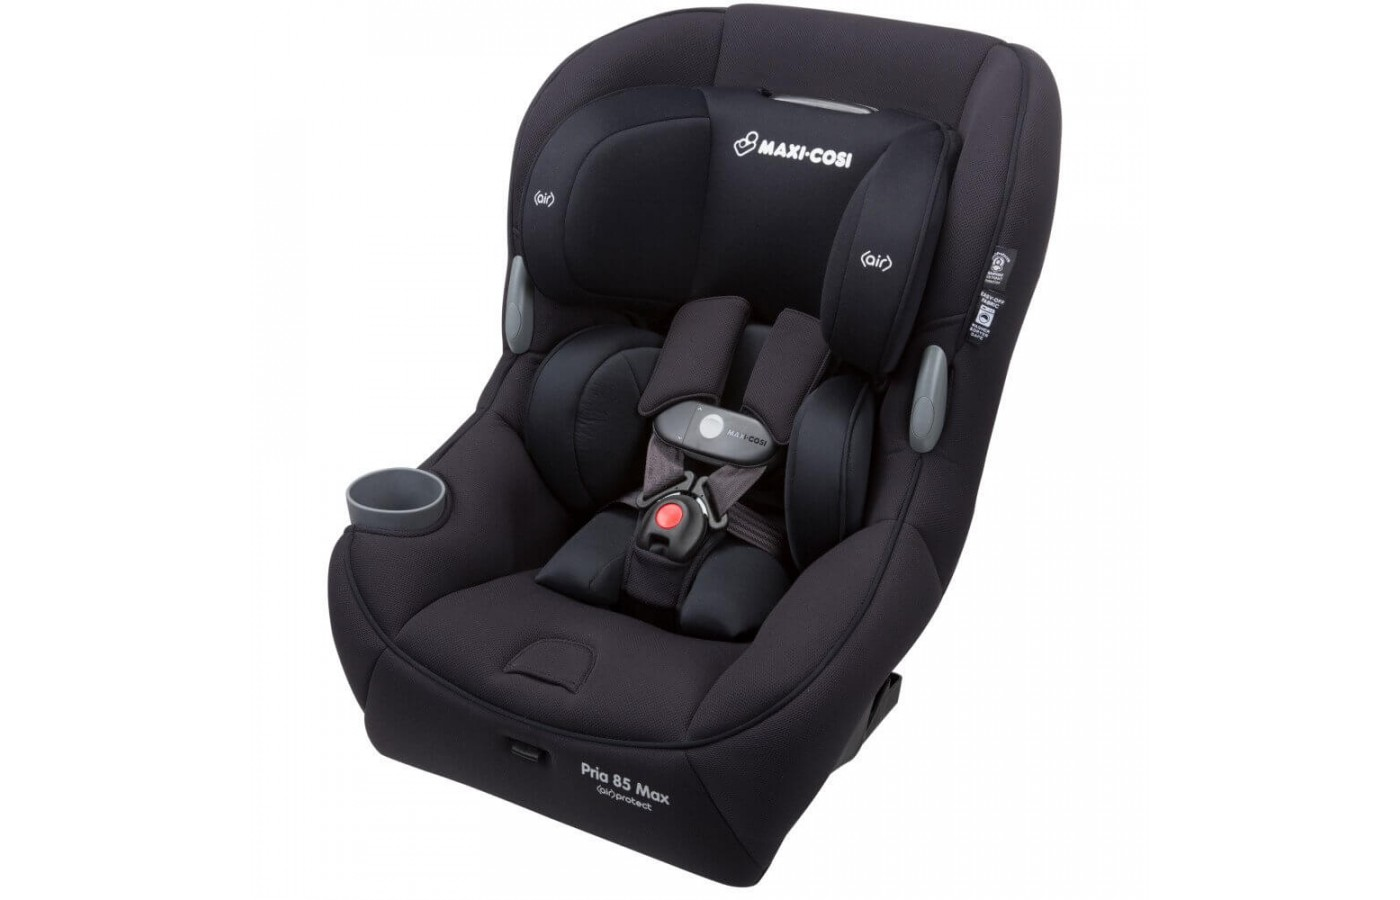 The seat can accommodate children up to 85 pounds